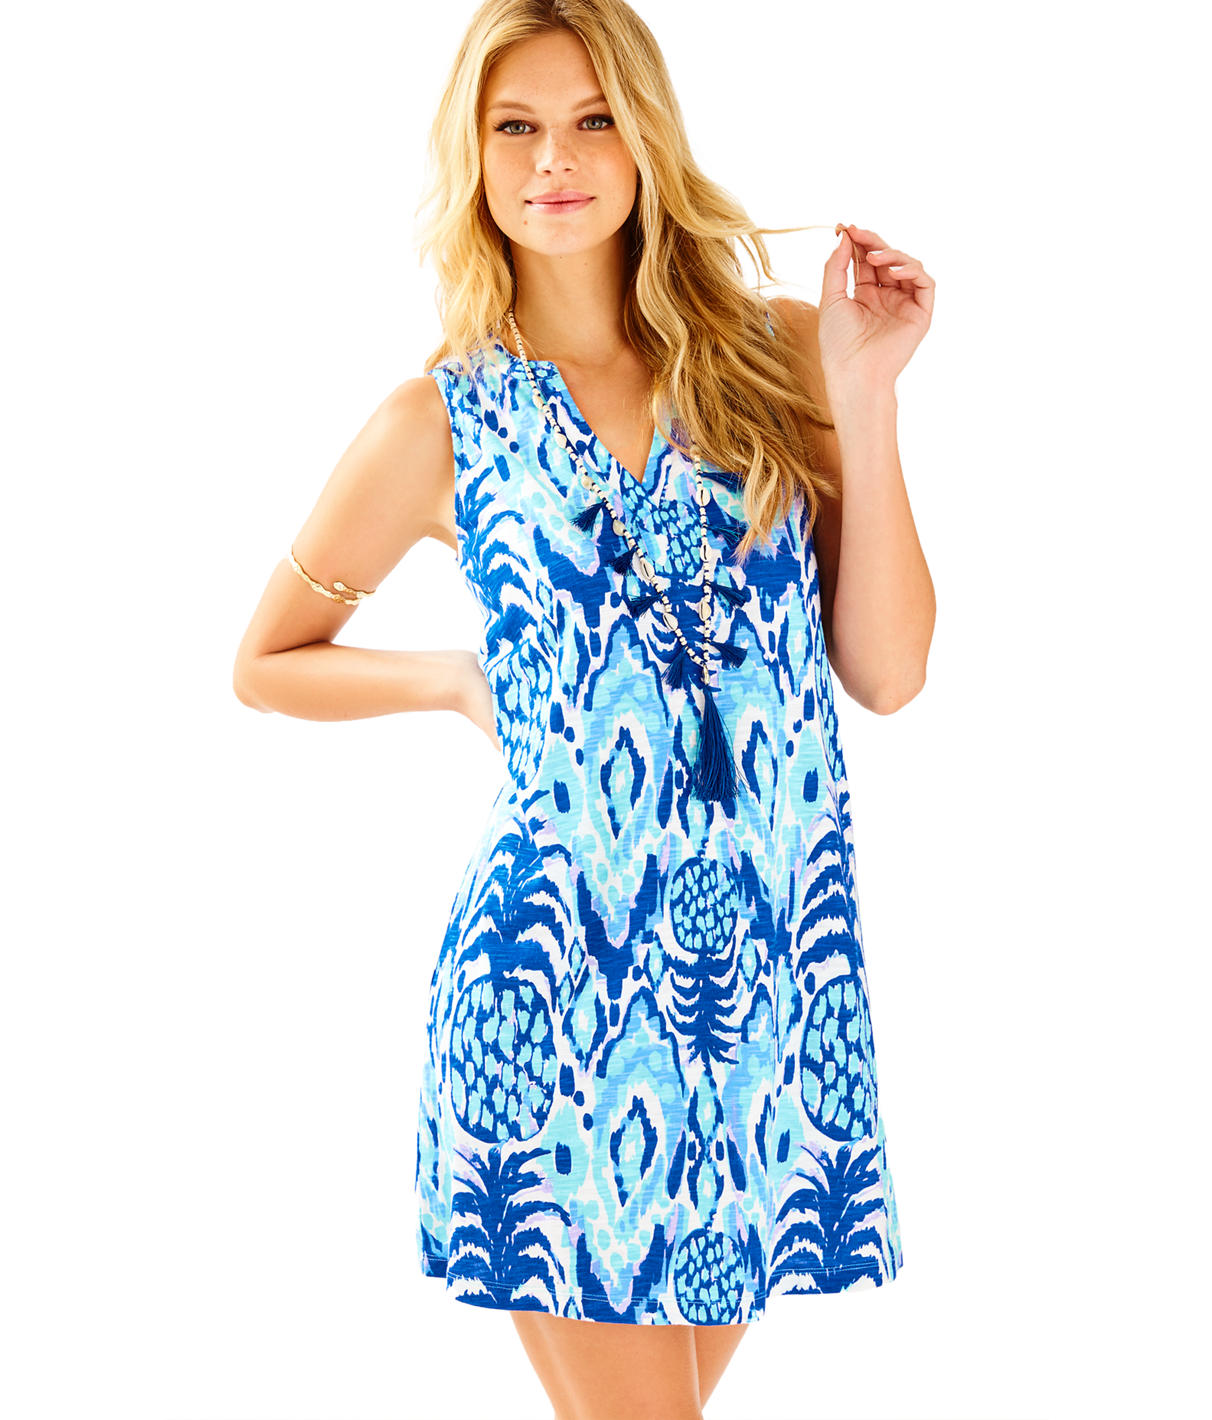 Lilly Pulitzer Sleeveless Dev Dress